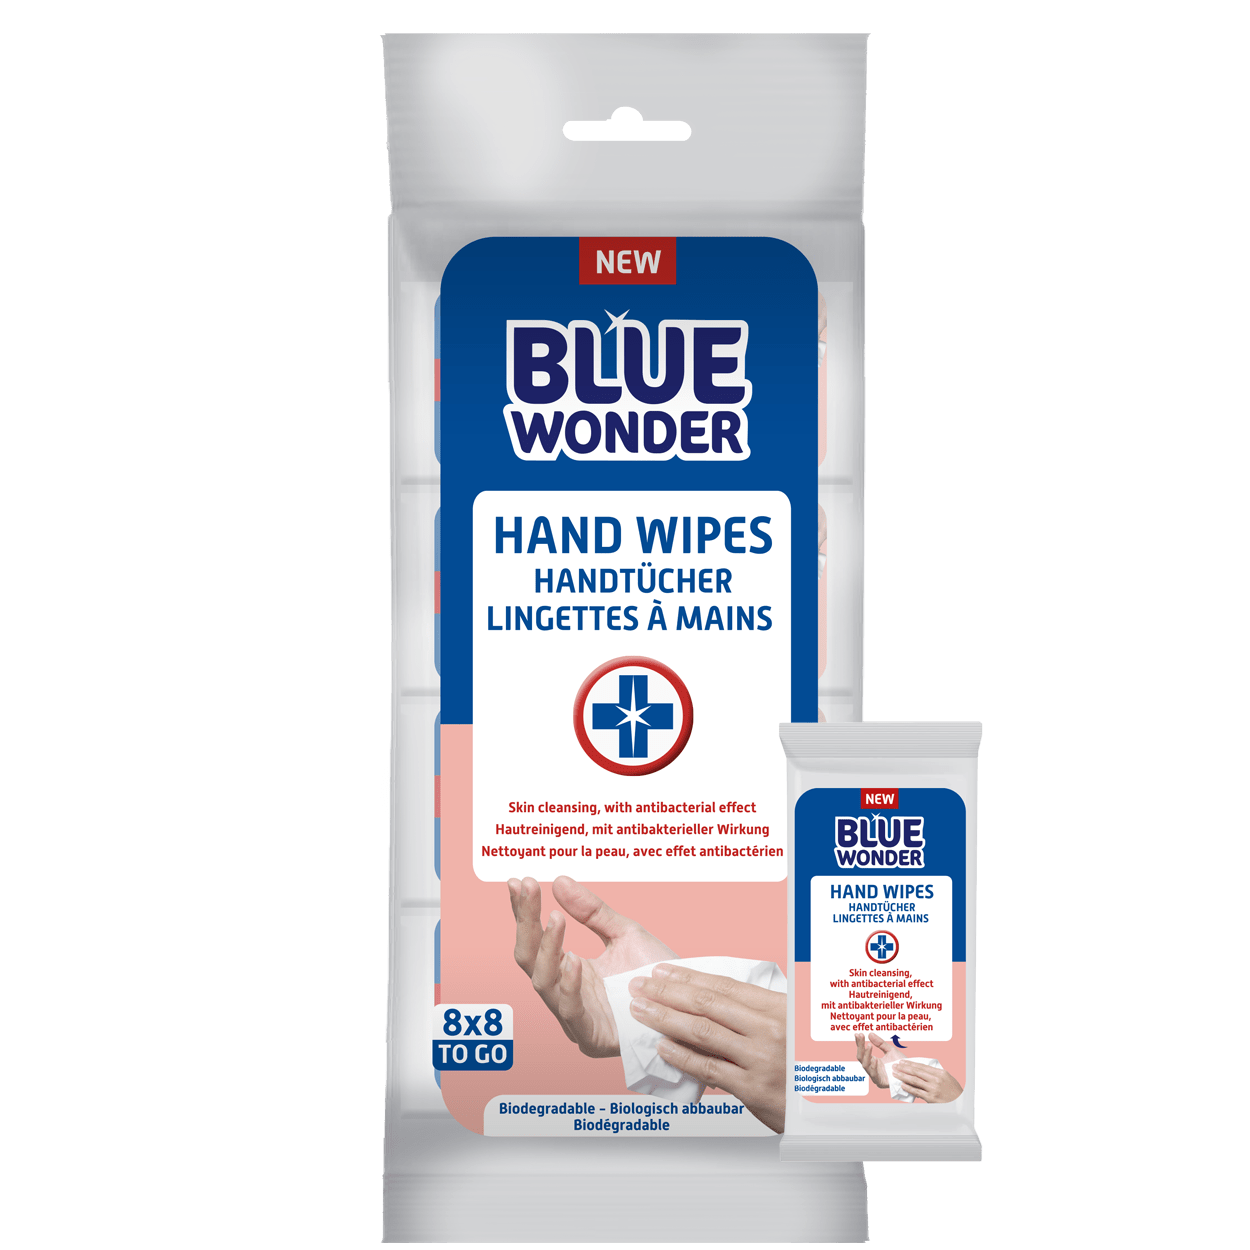 Skin cleansing, with antibacterial effect. Blue Wonder Hand Wipes effectively clean and protect the skin of the hands and body. The Blue Wonder Hand Wipes are now available in an easy mini size. Take it with you on the road, on a trip, or for a walk. 1 Mini size fits even the smallest size bag. Due to the unique composition, Blue Wonder Hand Wipes are biodegradable.